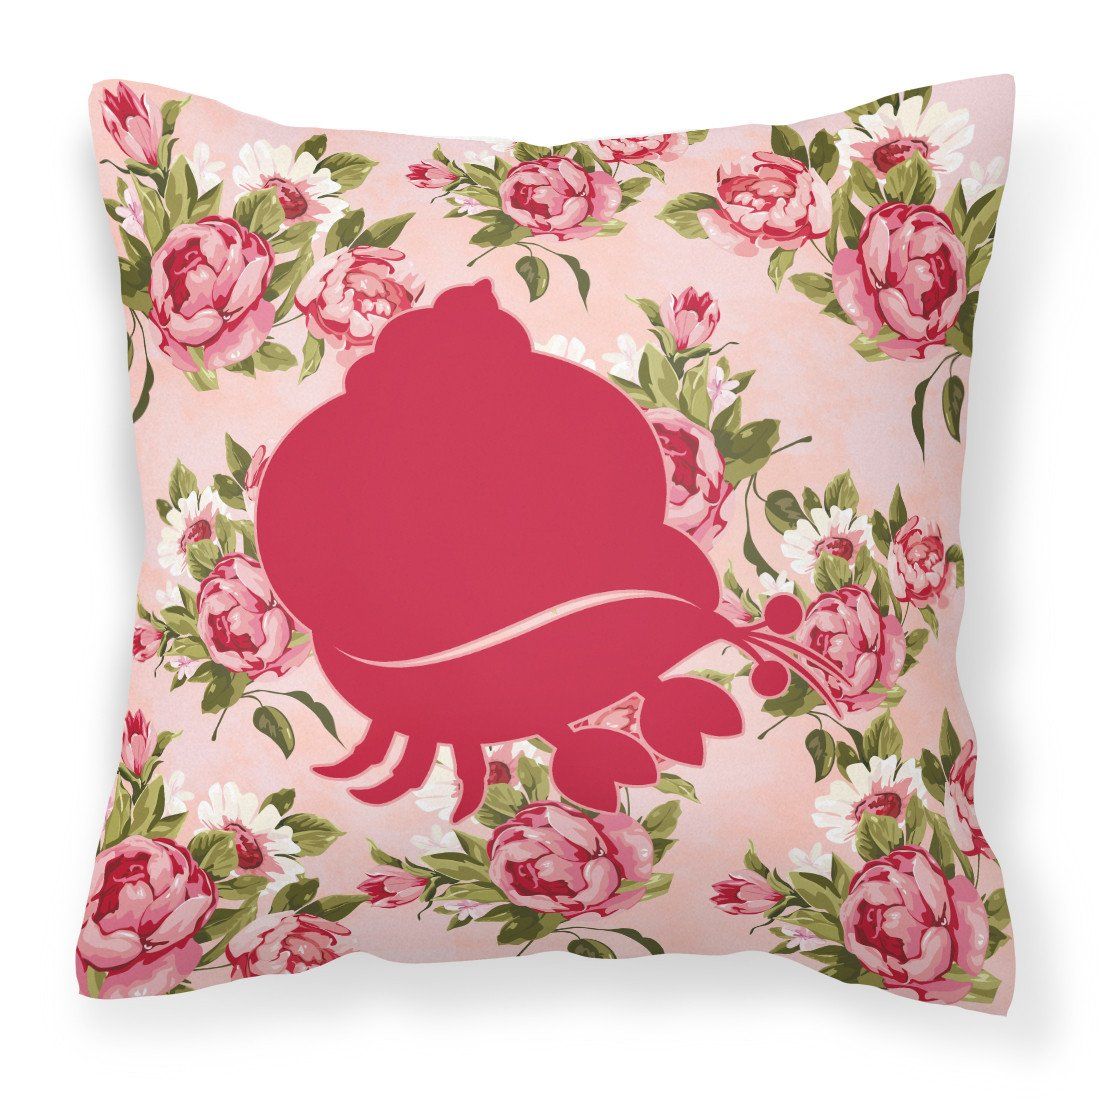 Hermit Crab Shabby Chic Pink Roses  Fabric Decorative Pillow BB1102-RS-PK-PW1414 by Caroline's Treasures